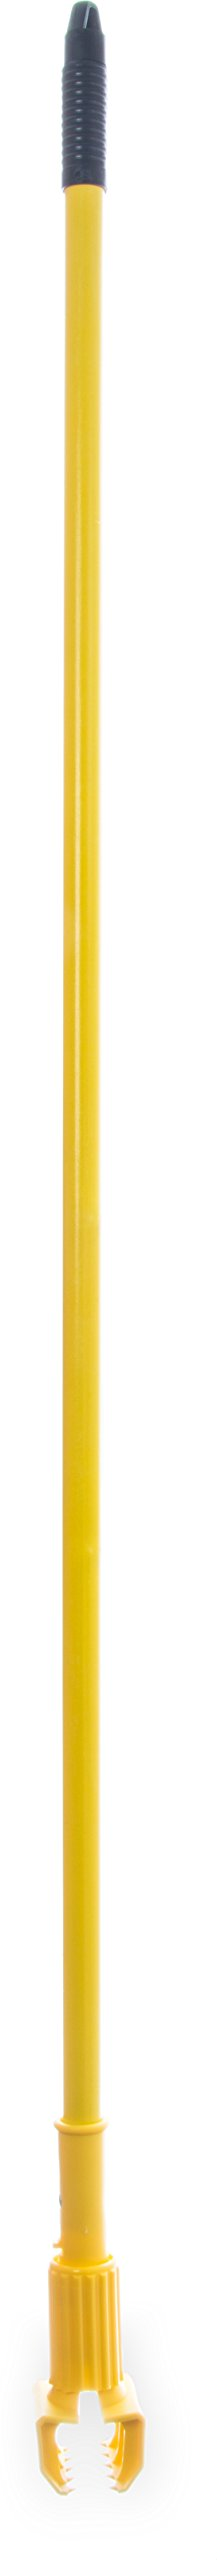 Carlisle 36947504 Commercial Jaw Clamp Fiberglass Wet Mop Handle, 60'', Yellow by Carlisle